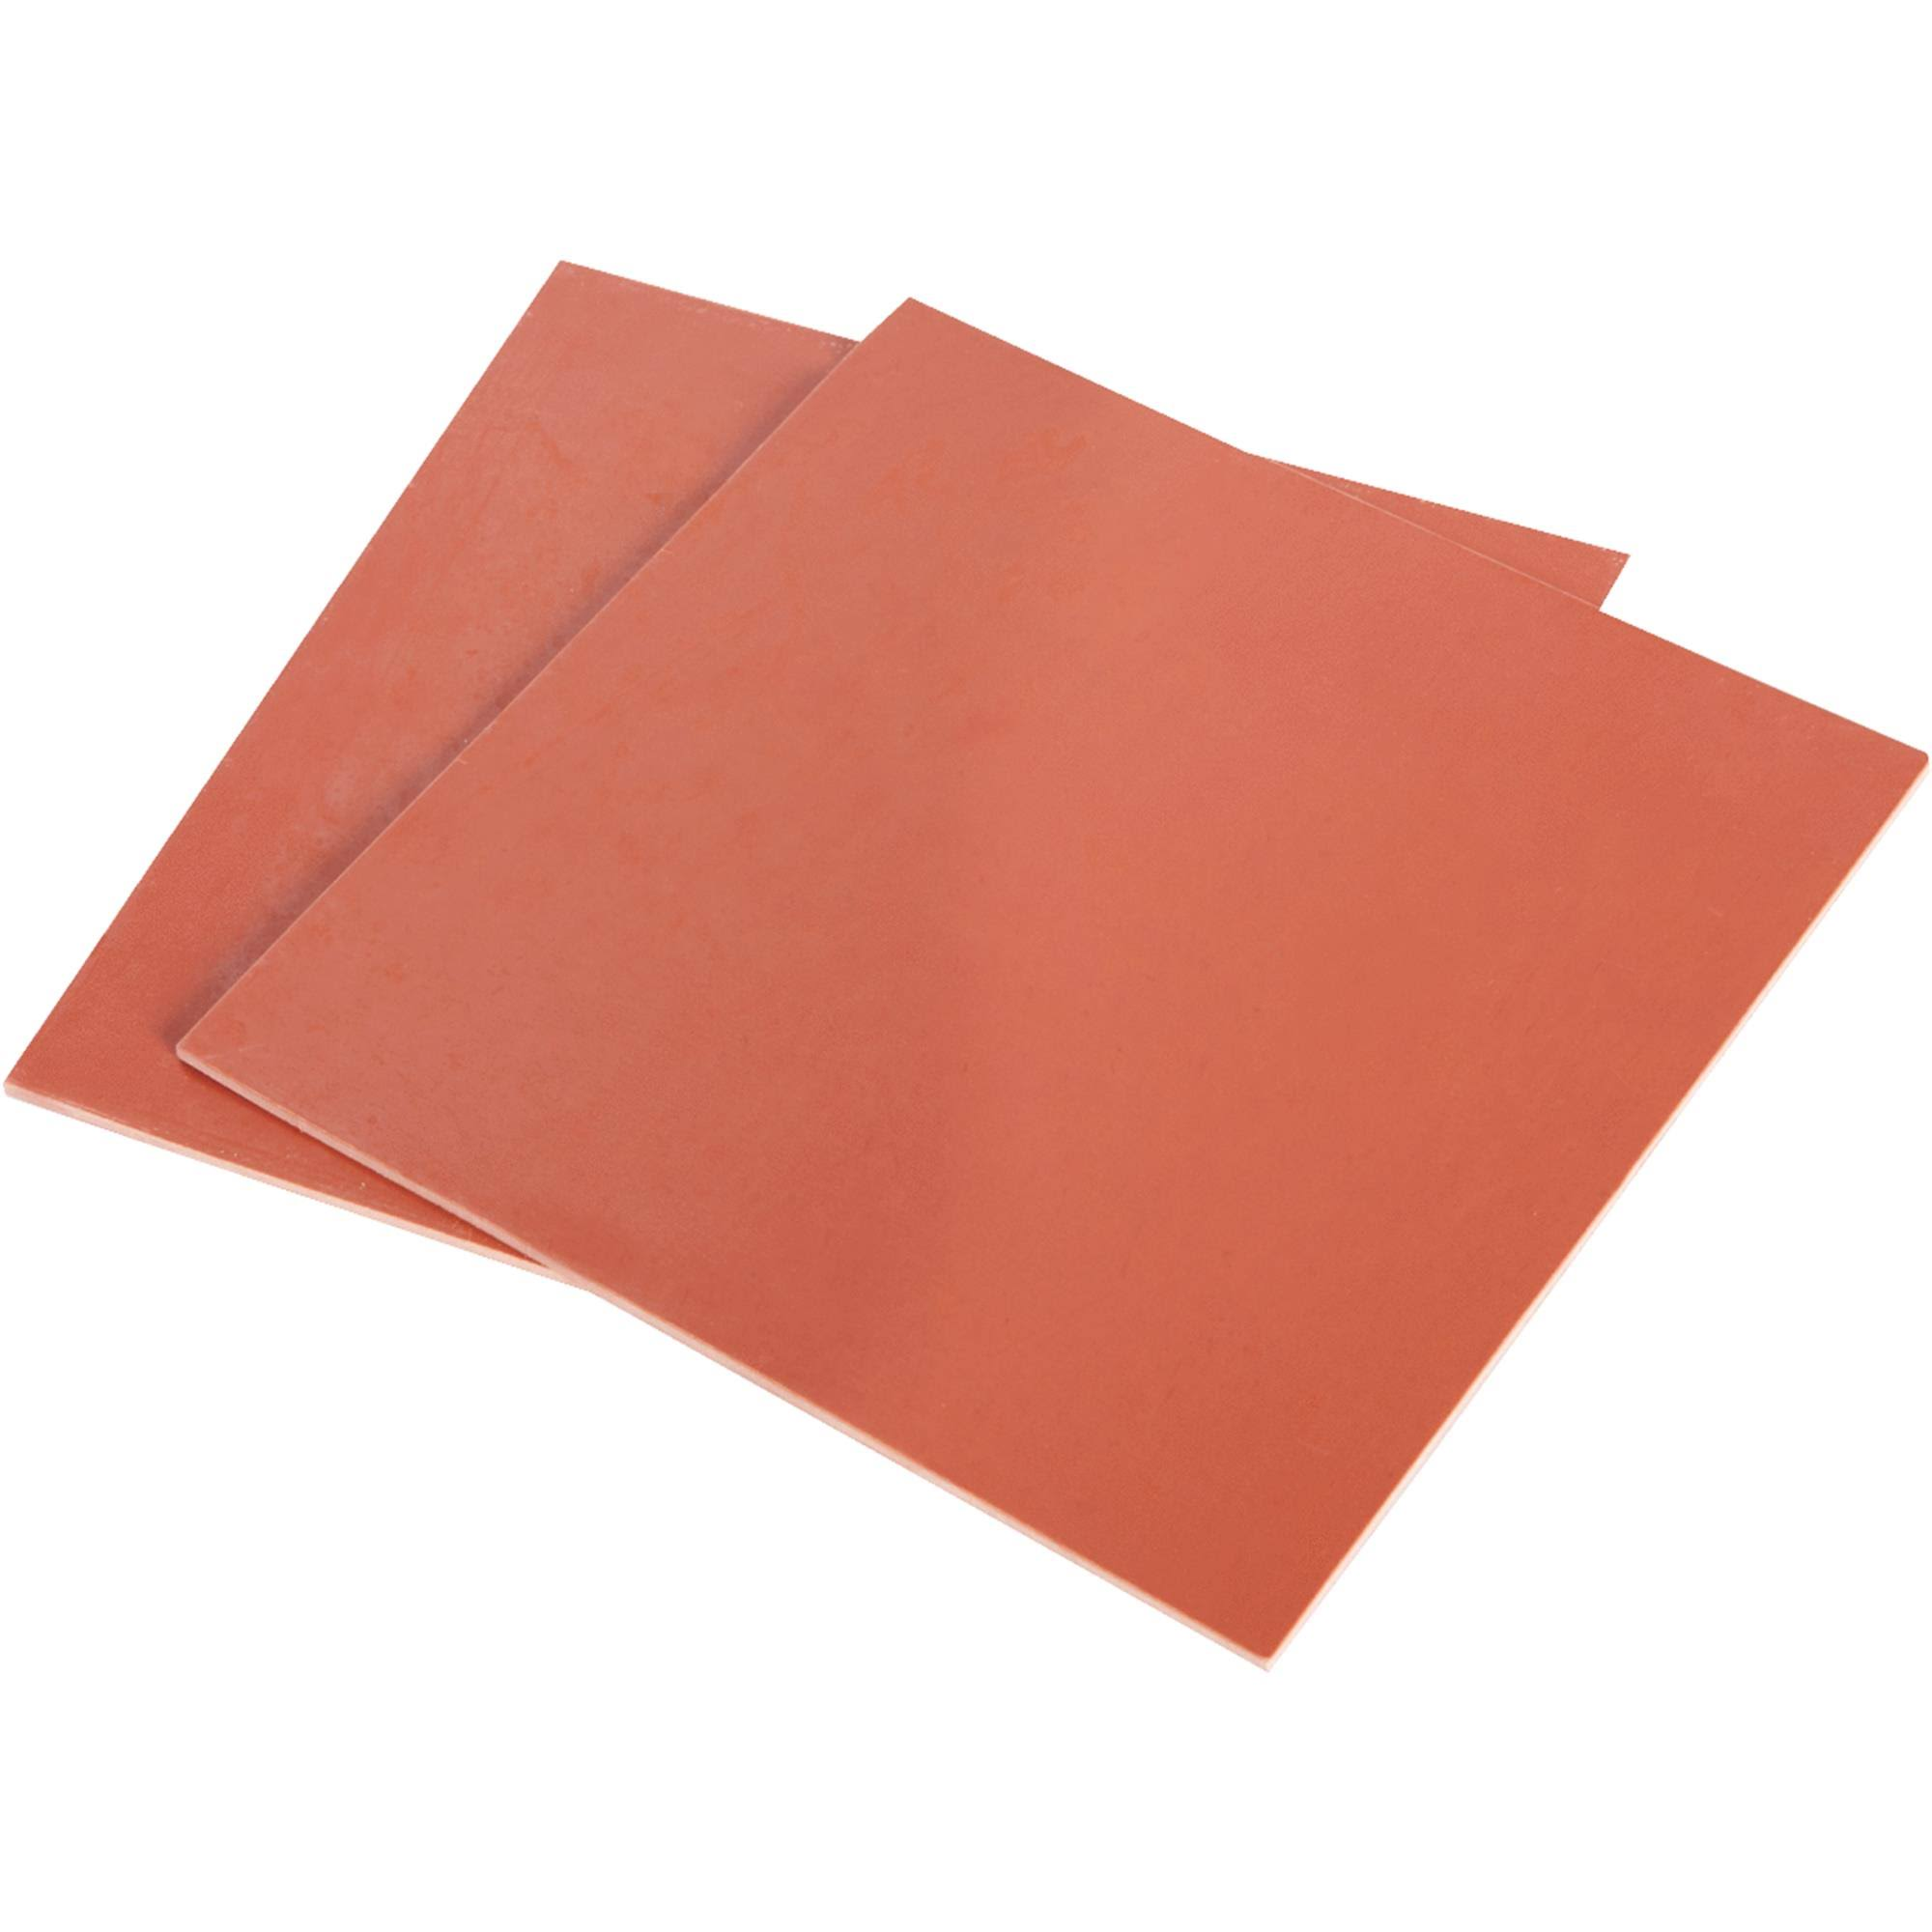 Do it Rubber Sheet - Red, 6x6""